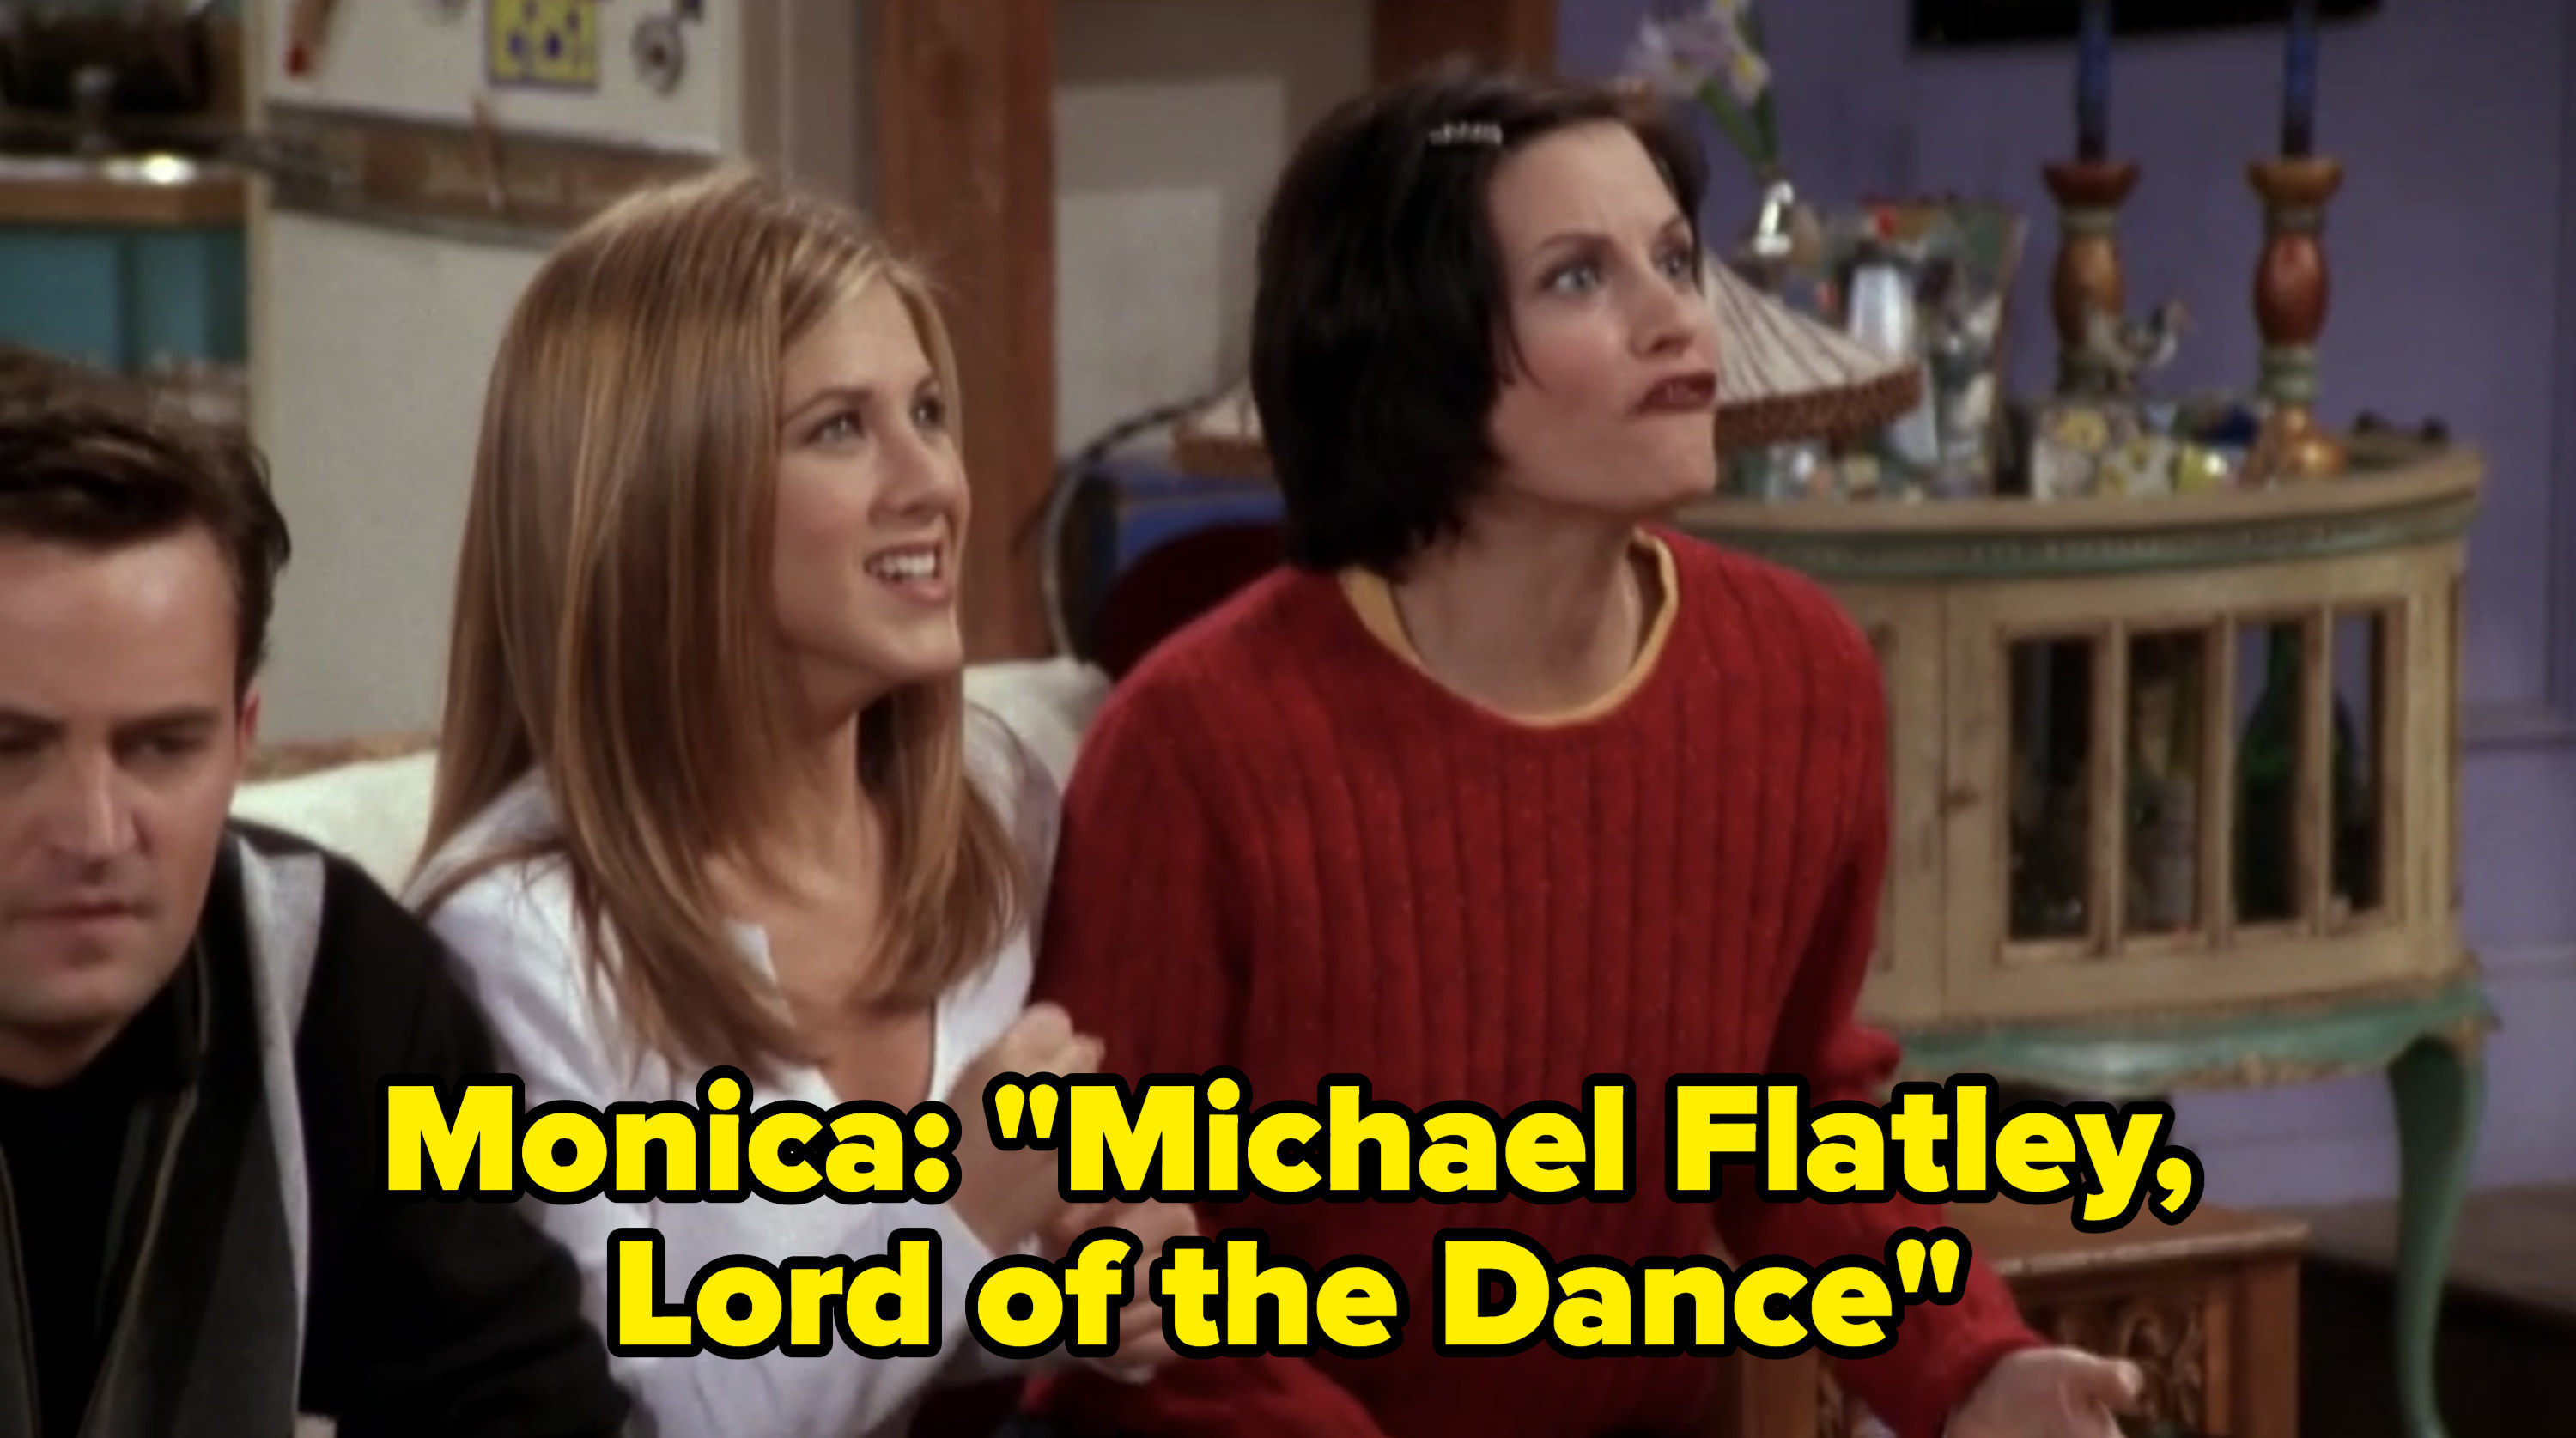 """Monica says: """"Michael Flatley, Lord of the Dance"""""""